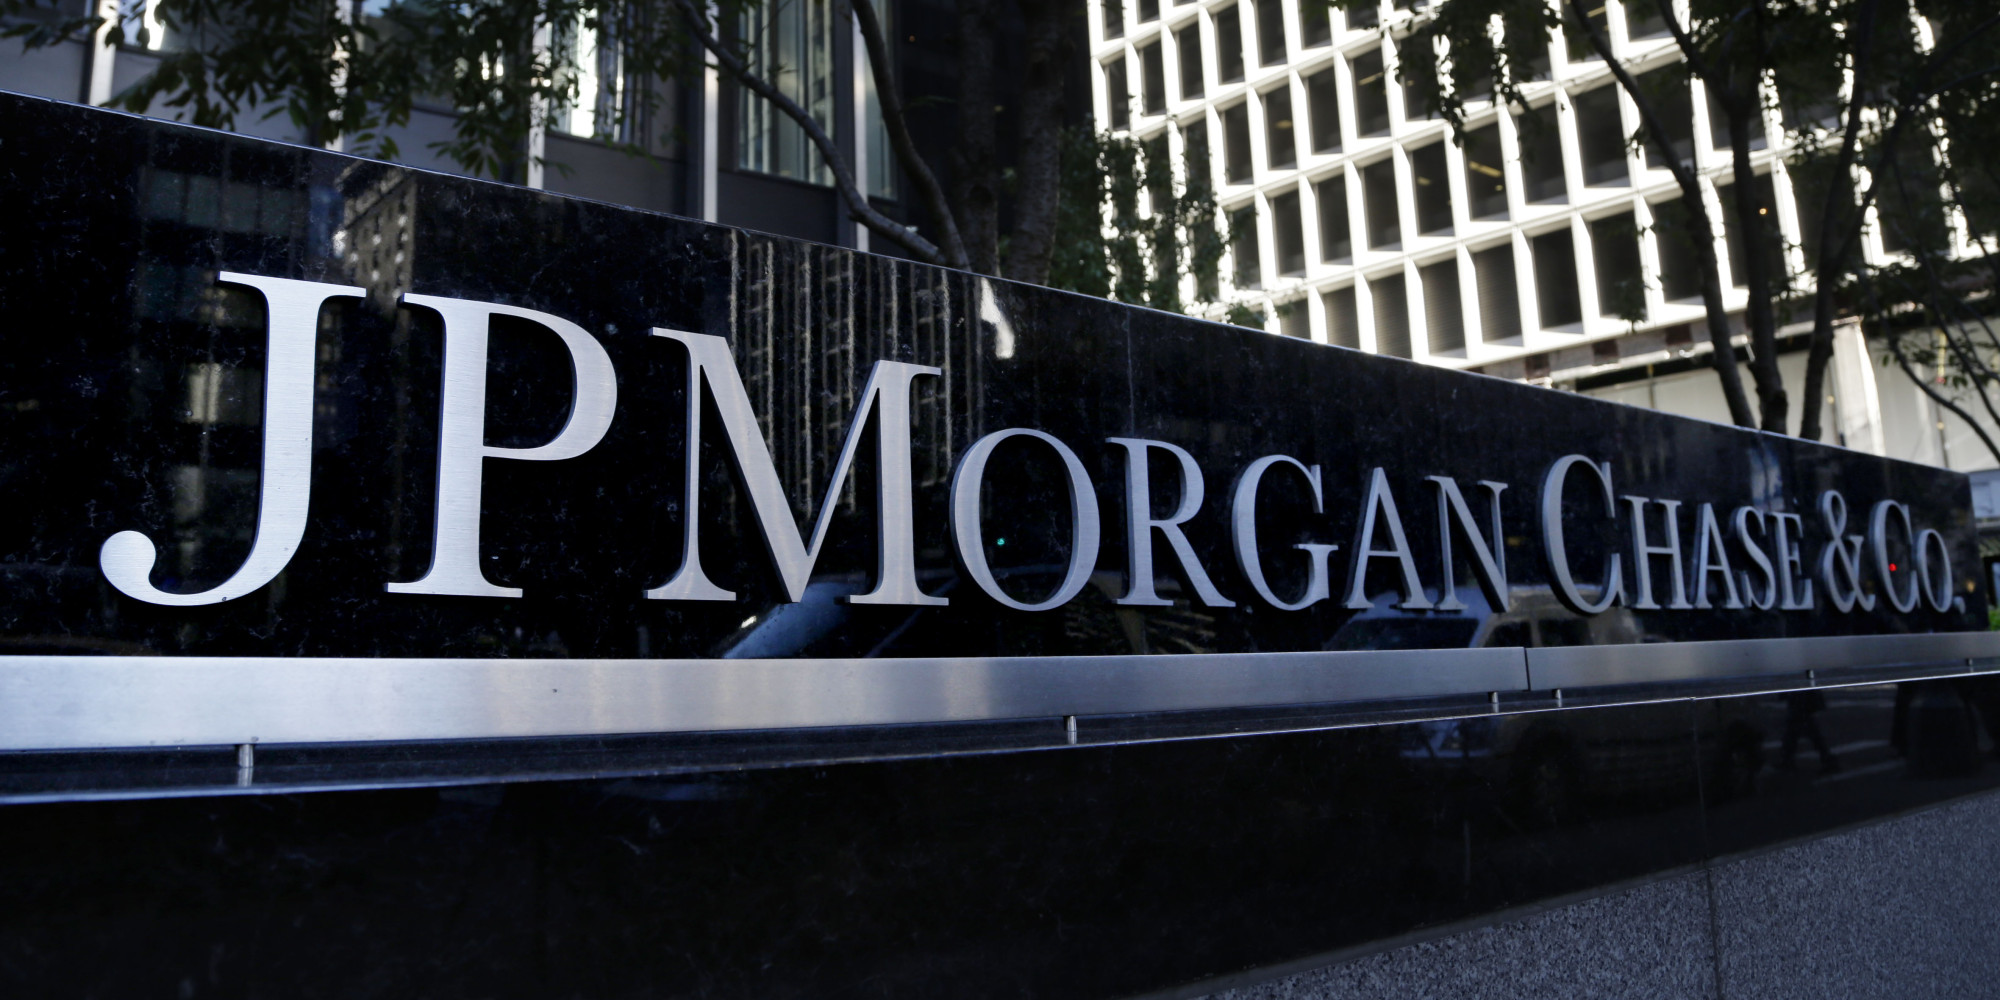 JP Morgan & Chase Co (JPM)